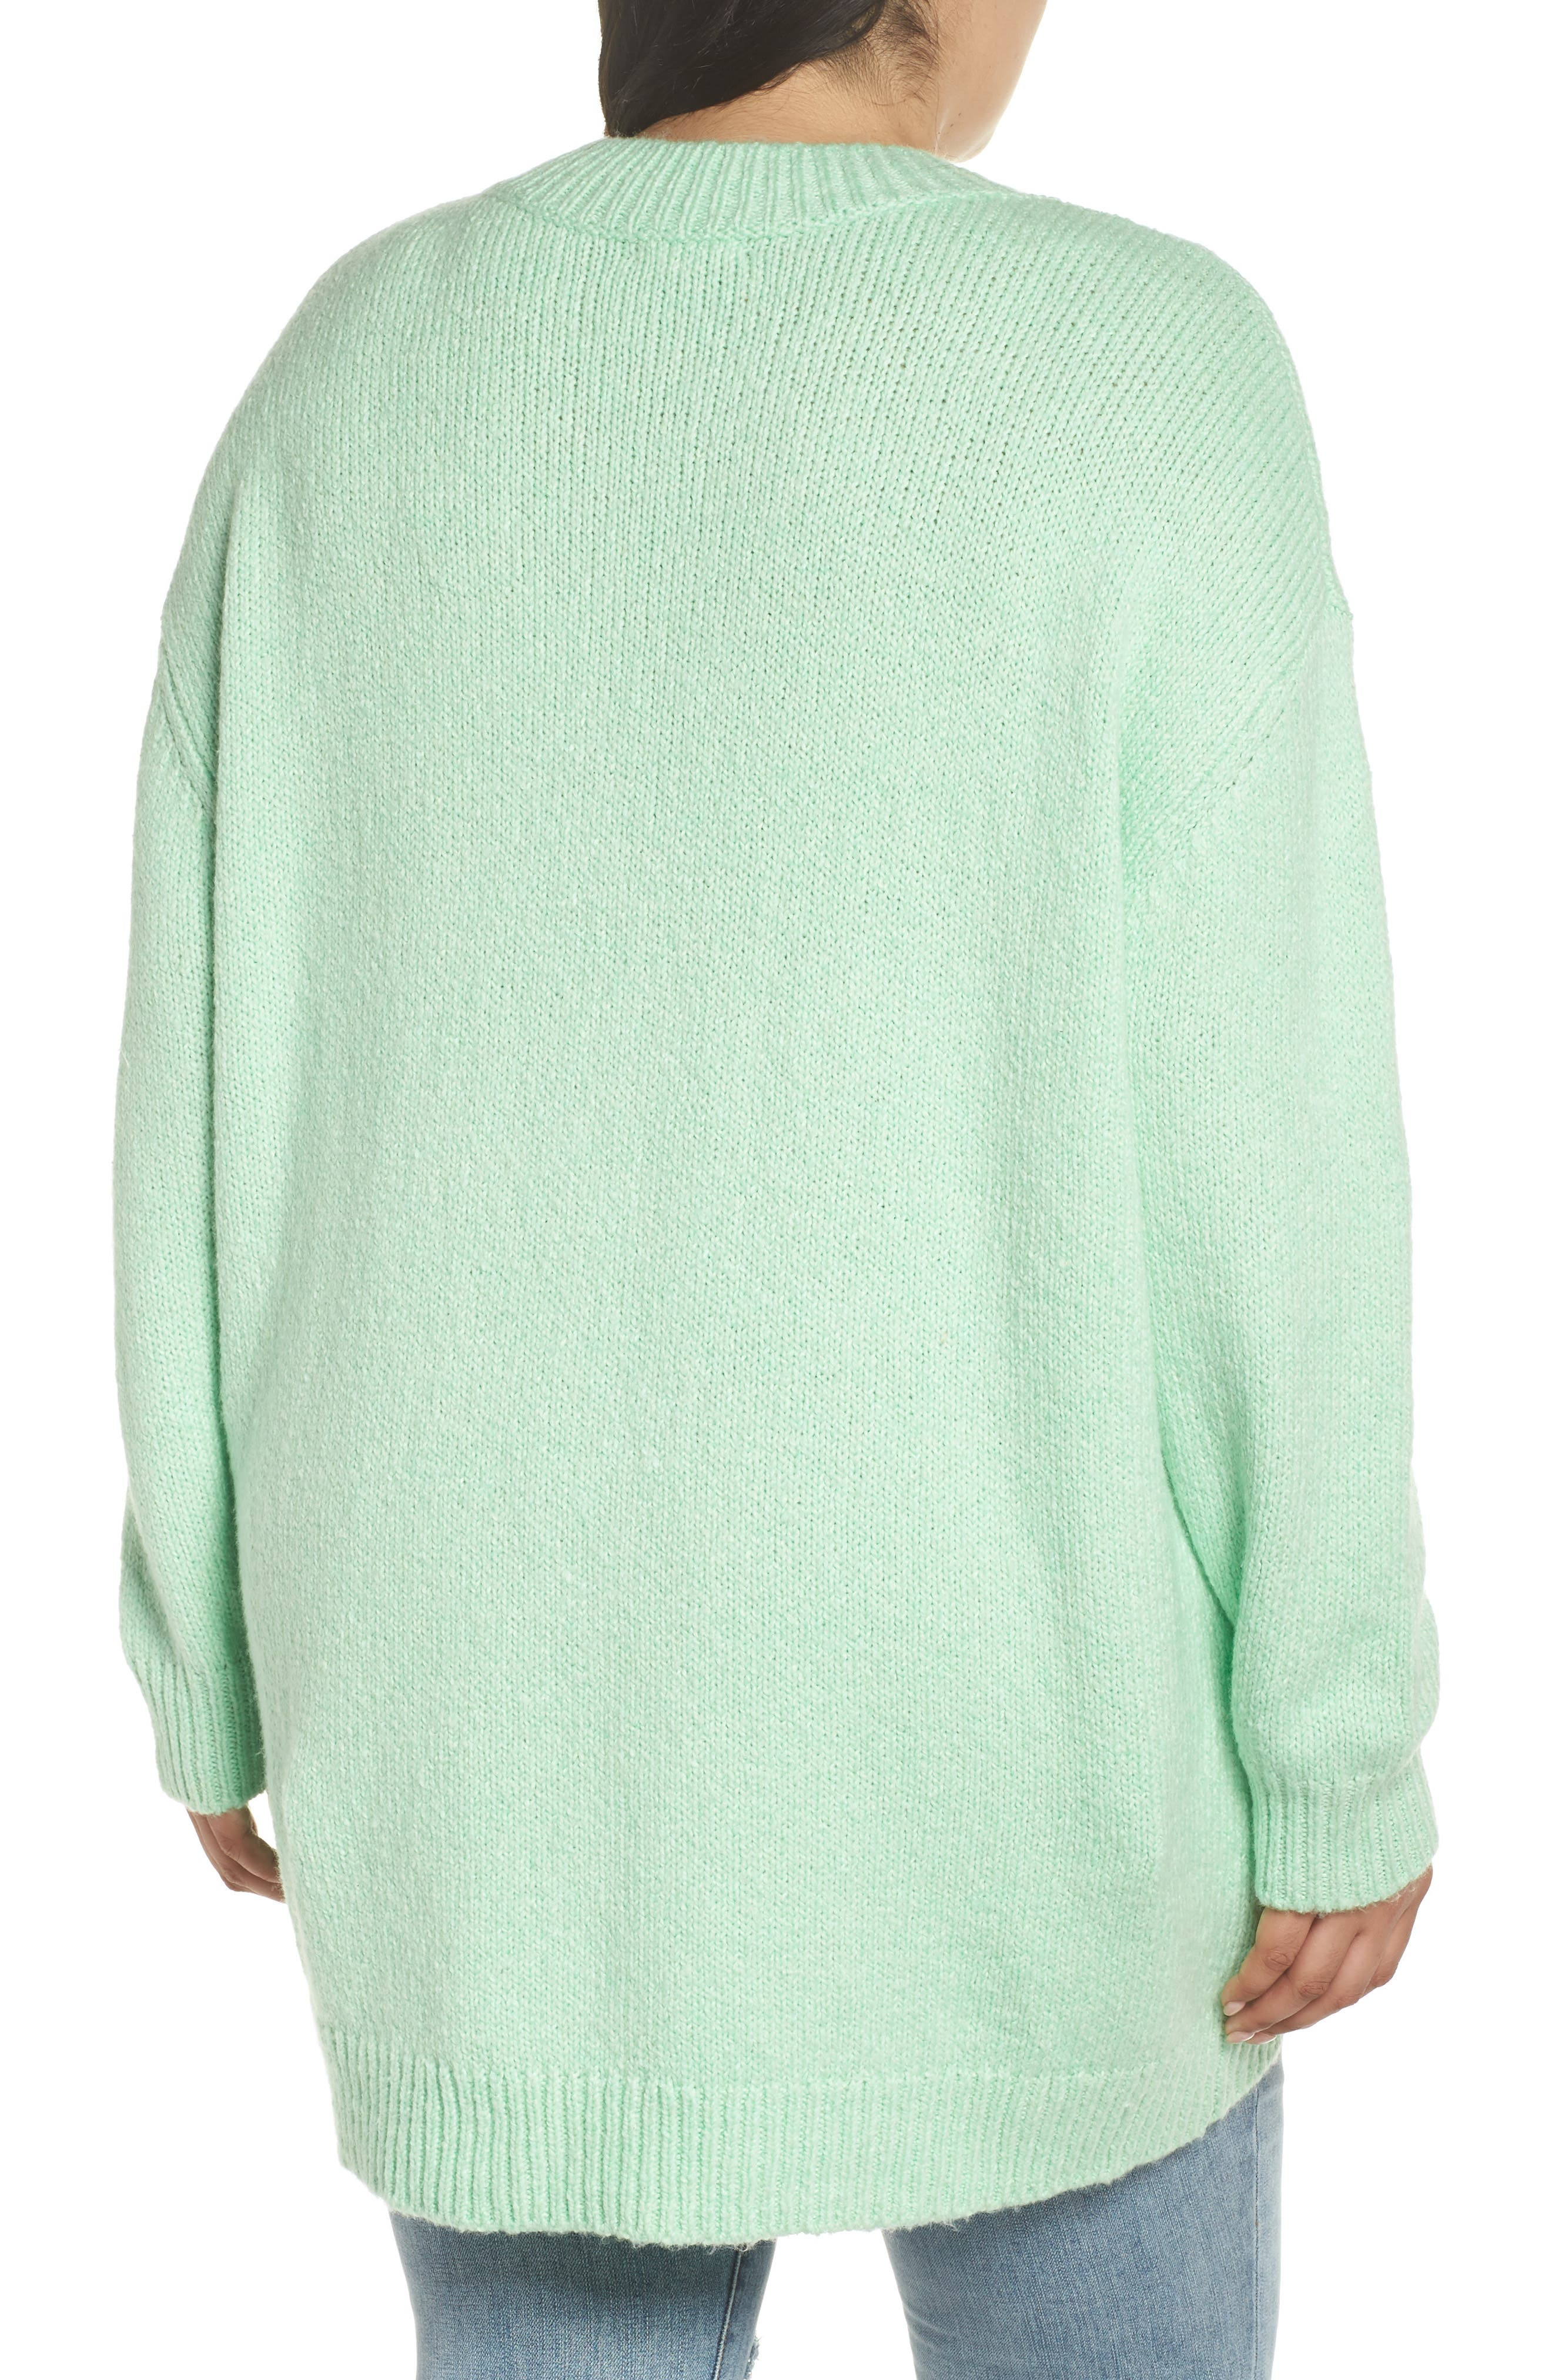 High-Low Sweater,                             Alternate thumbnail 8, color,                             GREEN ASH